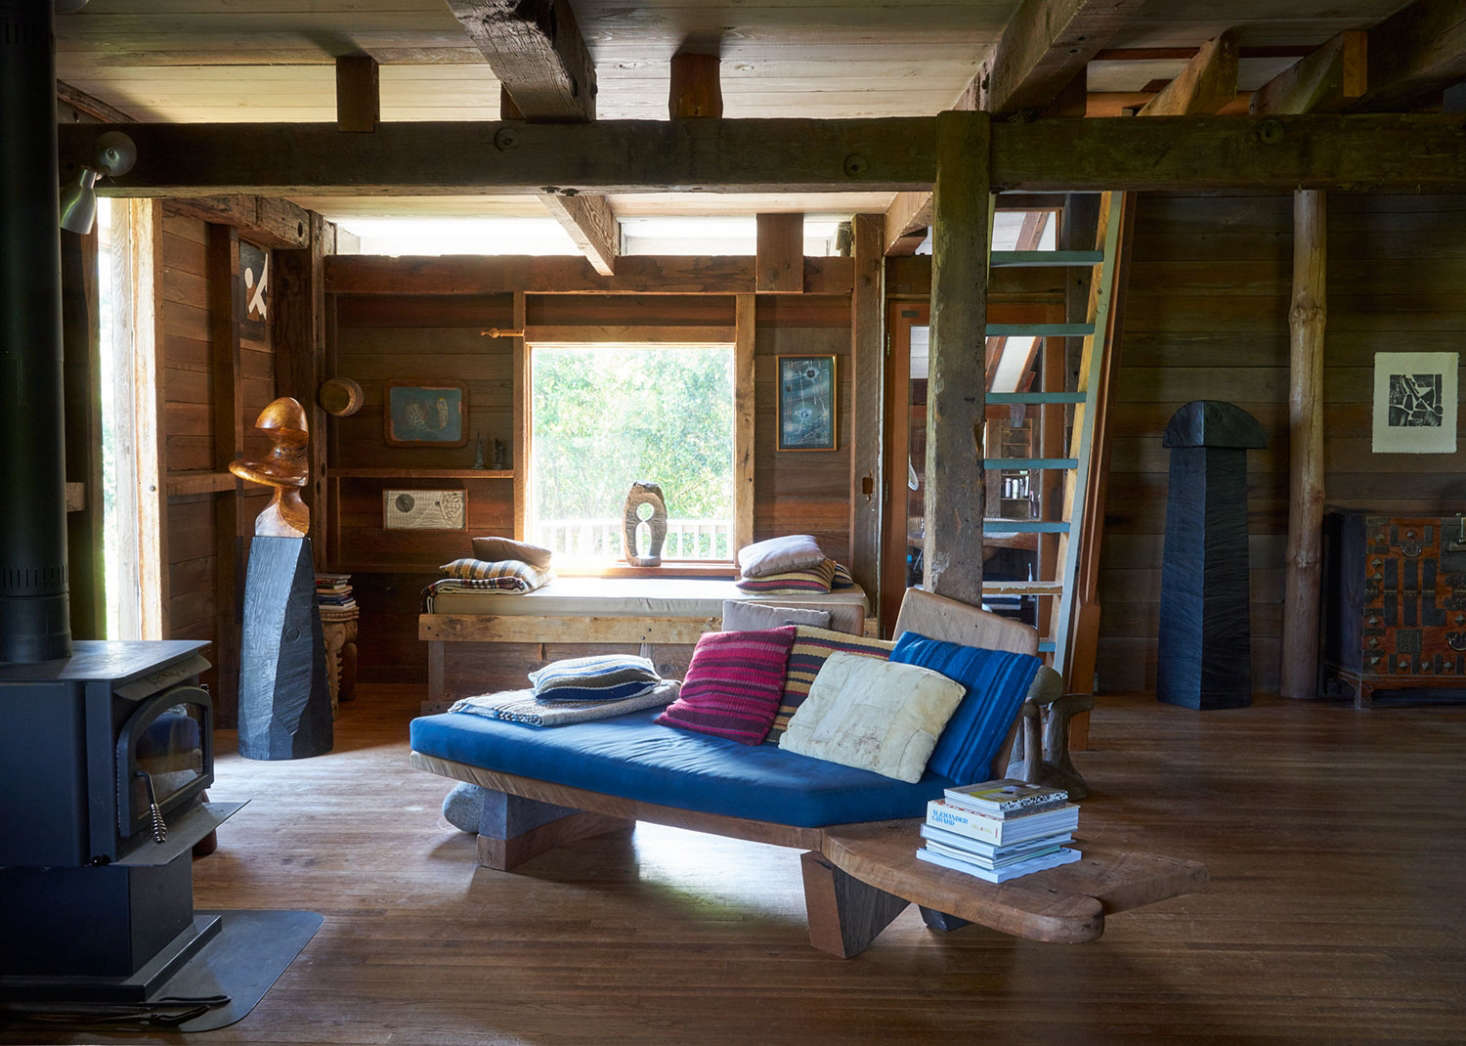 The open-plan living space, with a carved, benchlike couch.